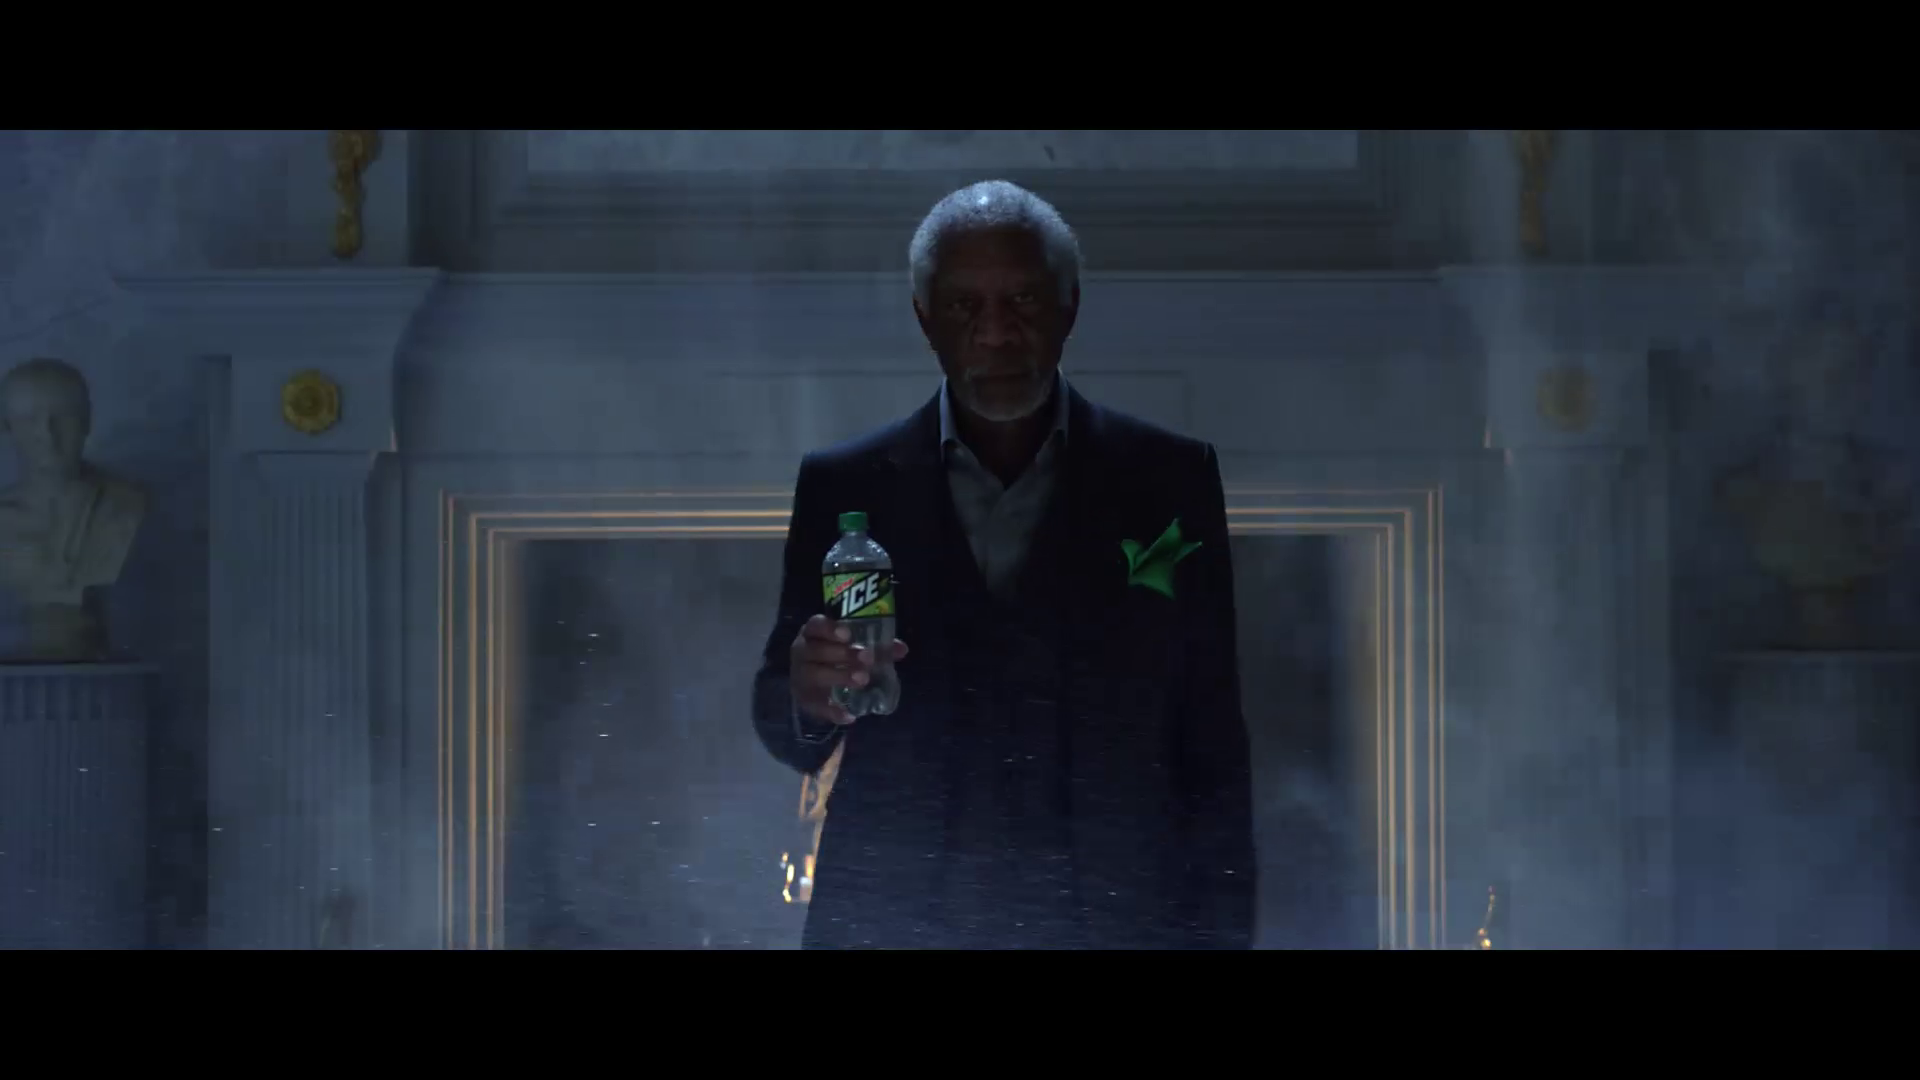 Thumbnail for MTN DEW ICE vs DORITOS BLAZE: Super Bowl Commercial